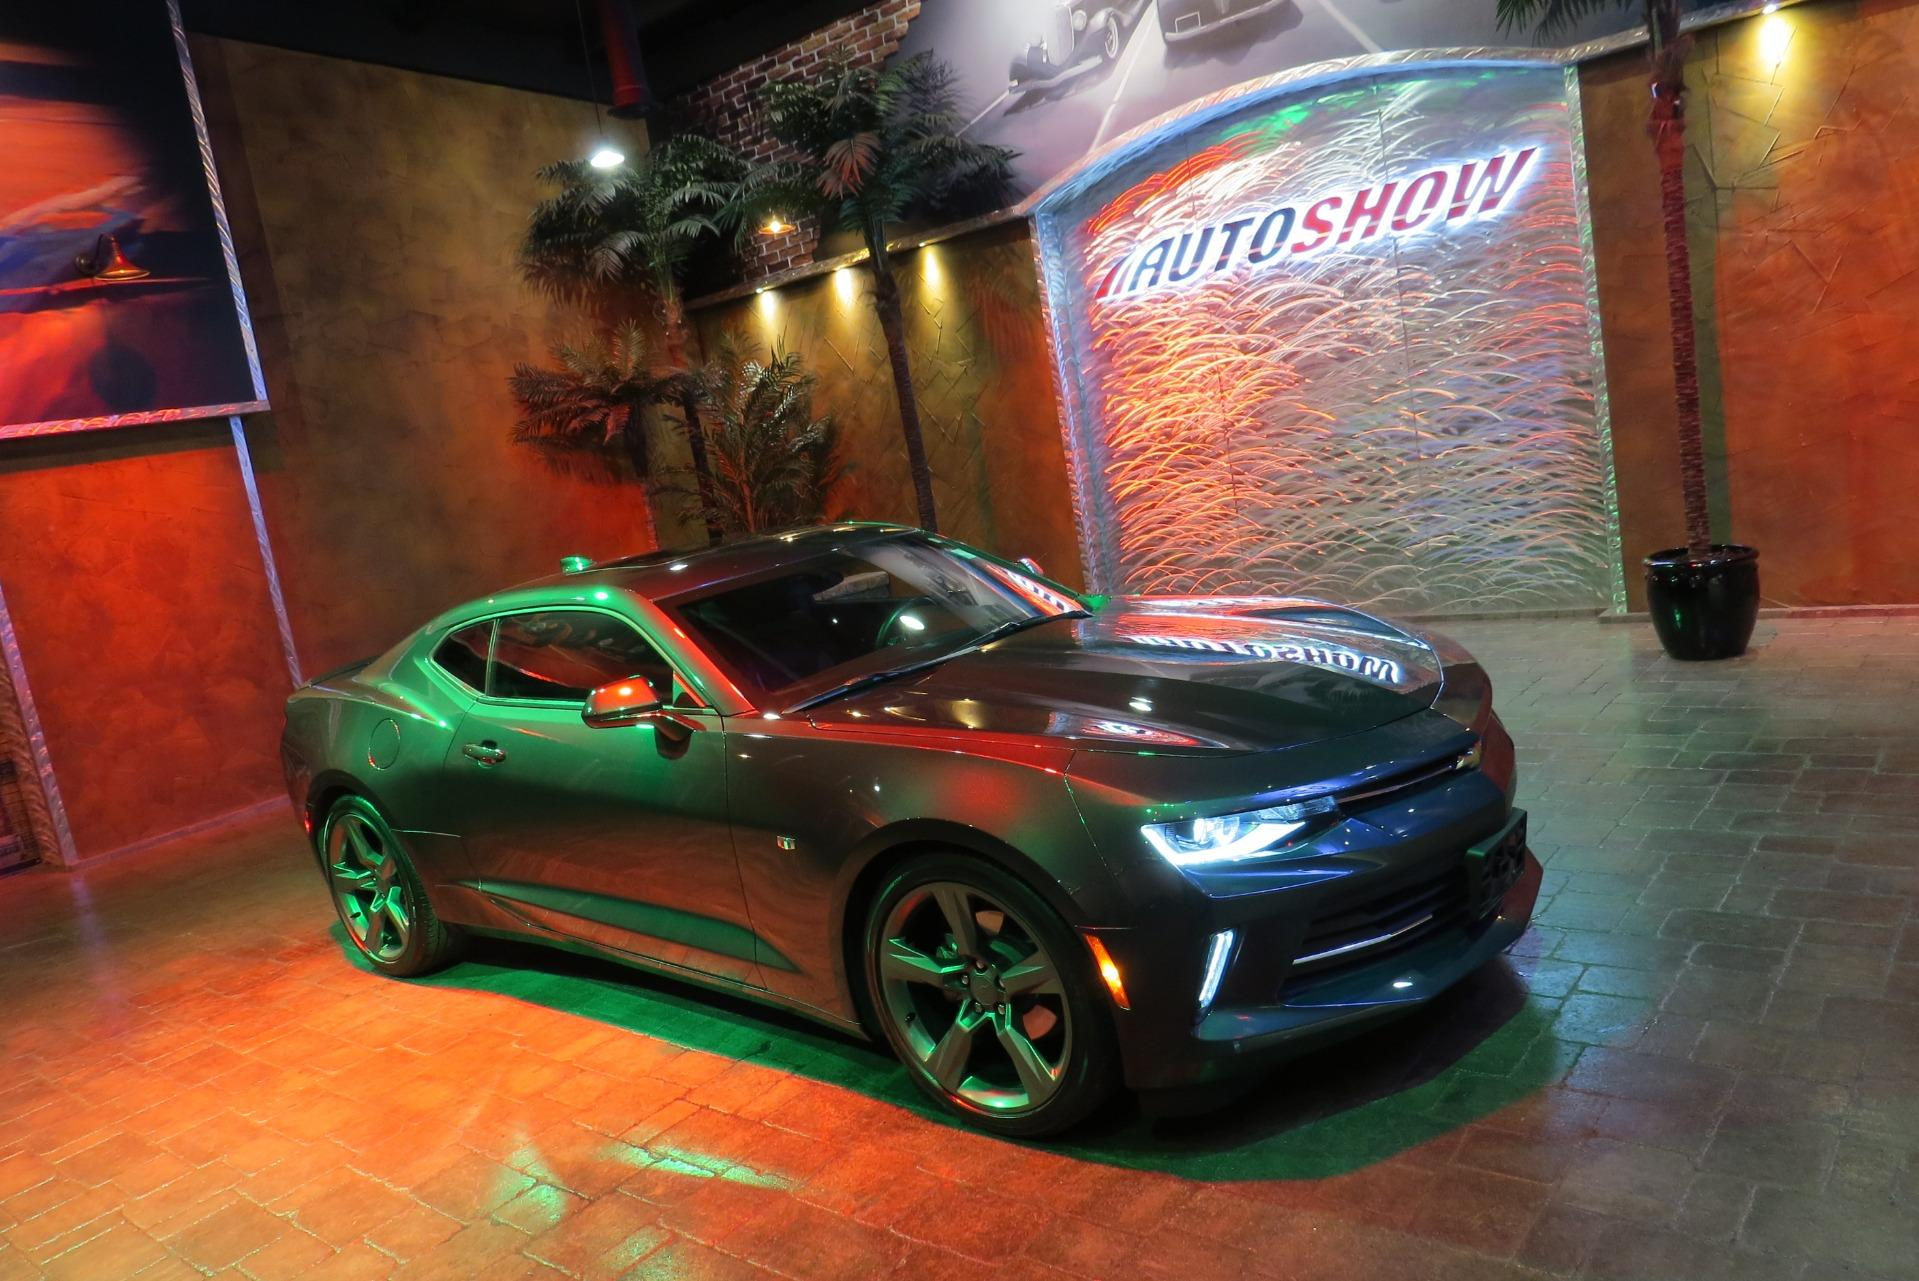 Used 2018 Chevrolet Camaro LT RS w/ S.Roof - Like NEW Local Trade!! for sale $26,800 at Auto Show Sales and Finance in Winnipeg MB R3Y 1G5 1